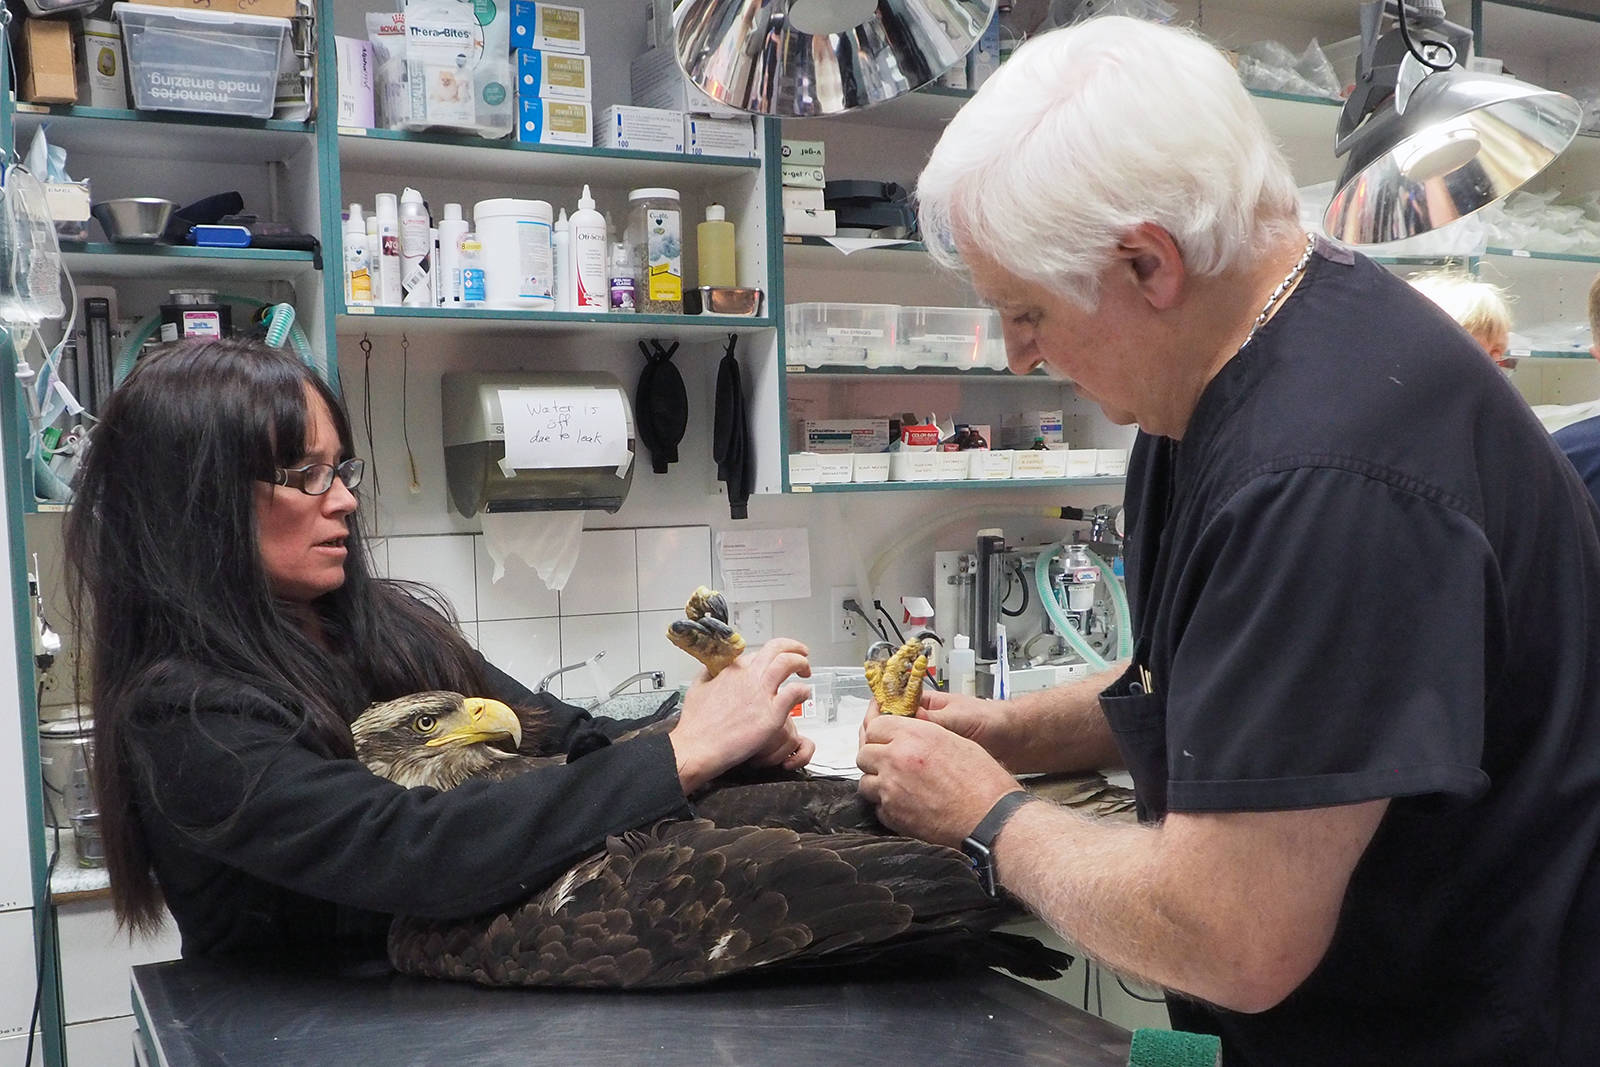 Tina Hein of the Raptor Rescue Society and Ken Langelier, veterinarian, prepare to feed a young eagle prior to releasing it from its stay at Island Veterinary Hospital on Tuesday morning. It was one of 10 eagles that were stricken after eating poisoned meat on the weekend. (Chris Bush/News Bulletin)